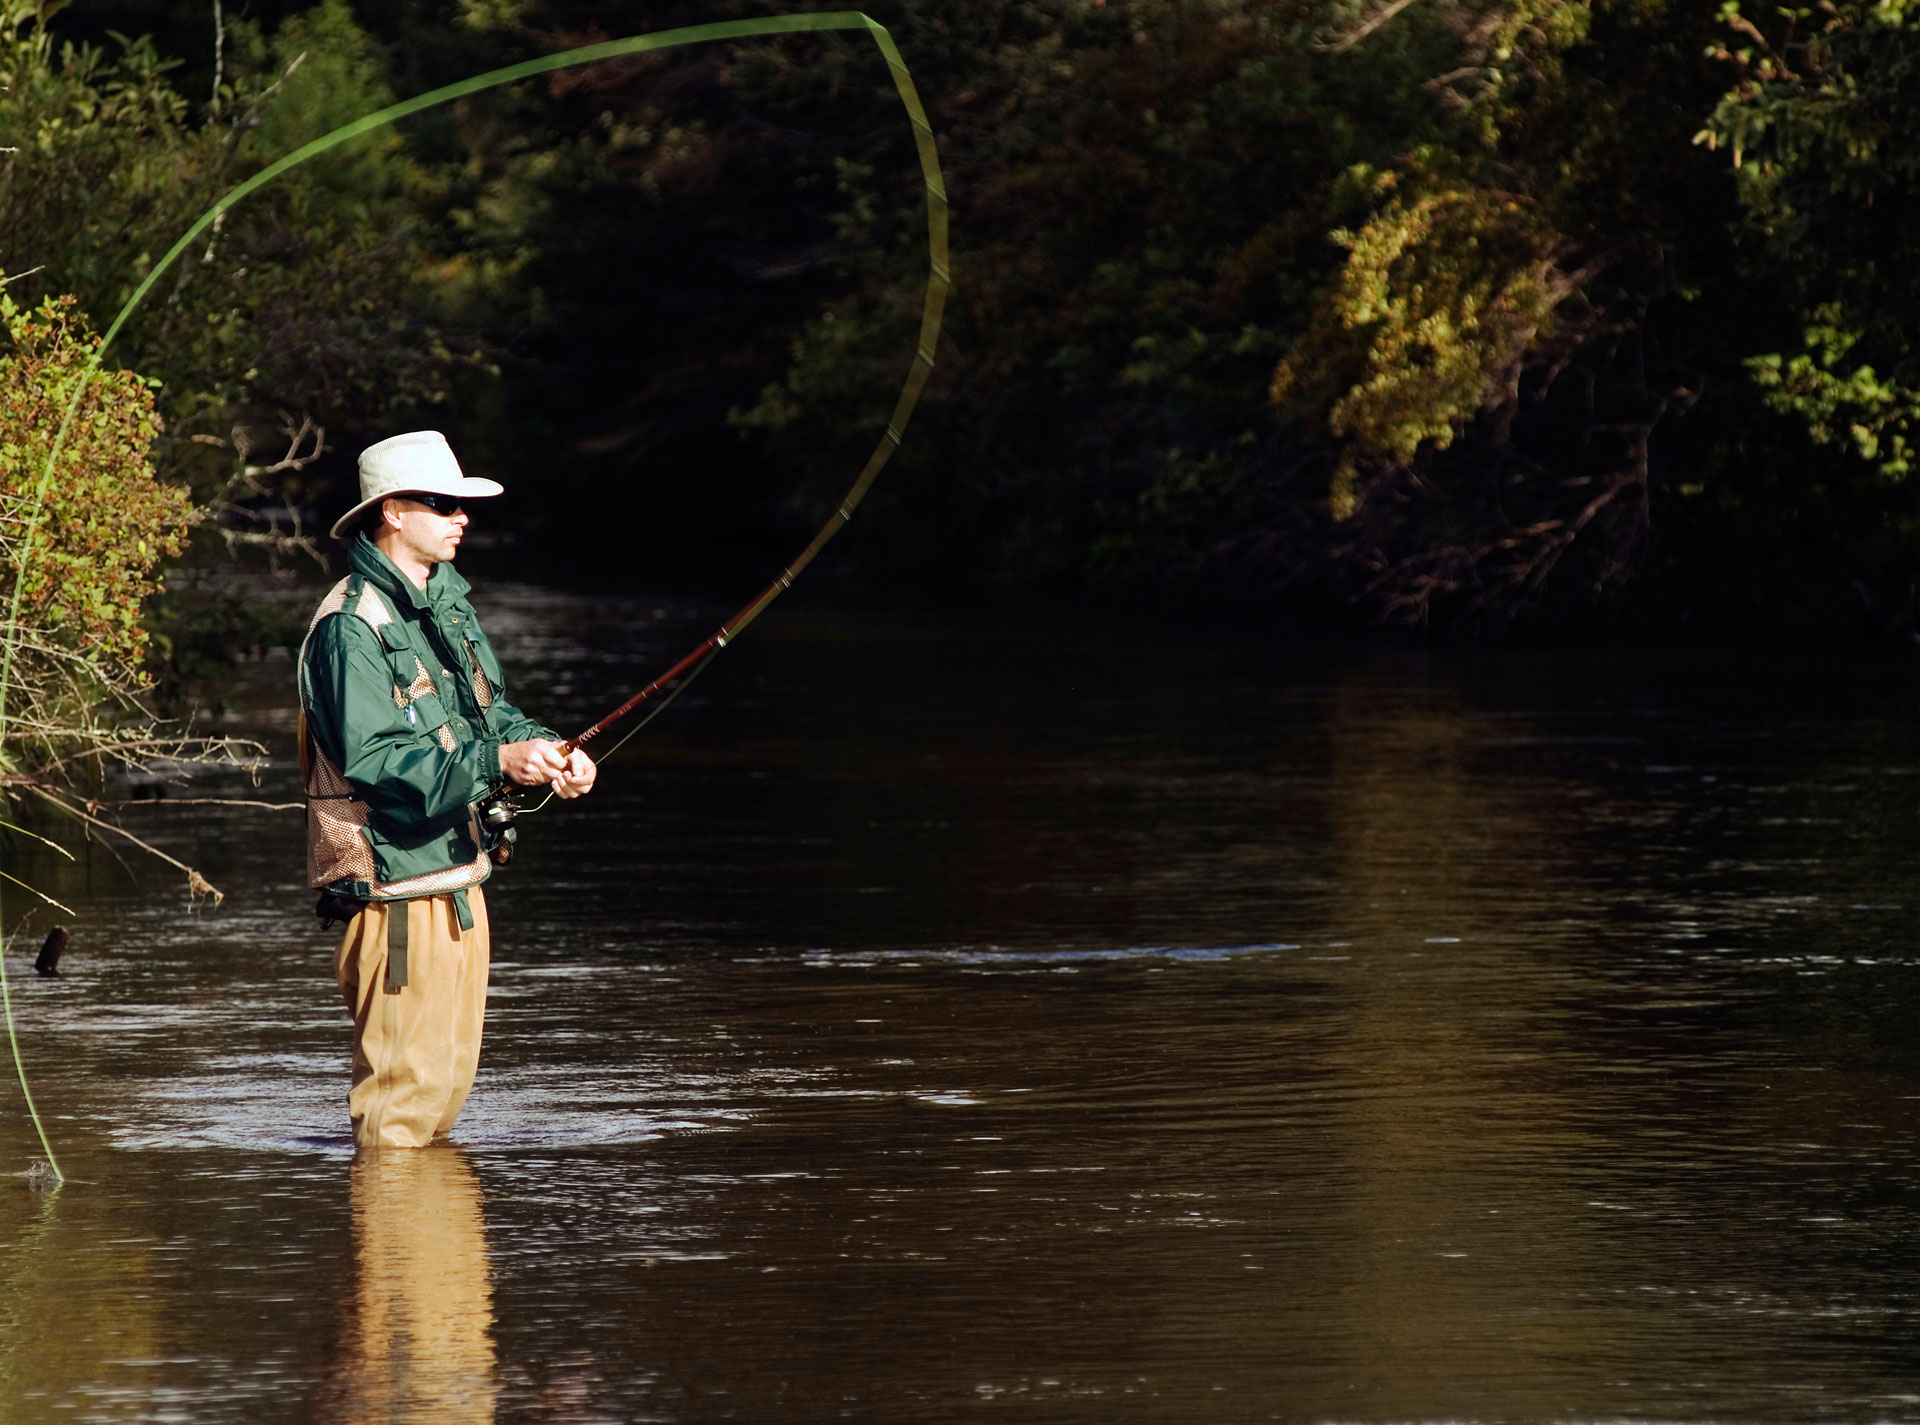 Other outdoor shows for Fly fishing photography